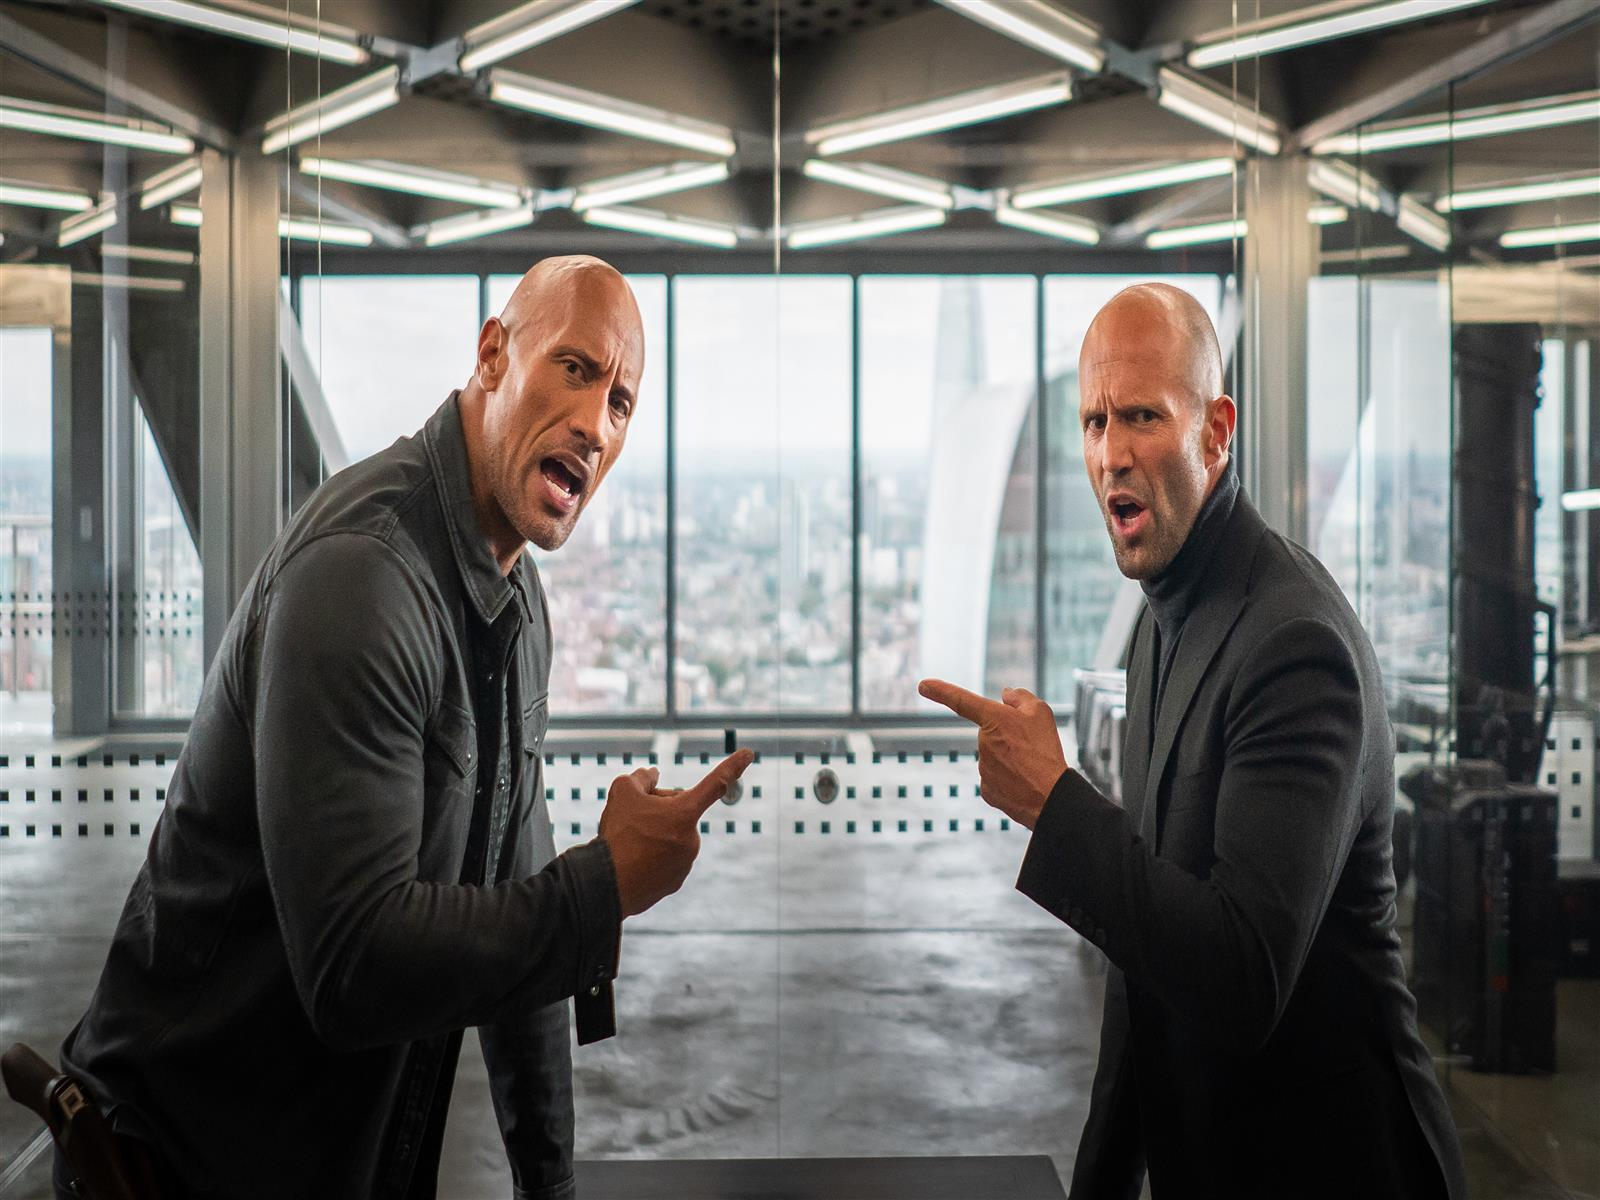 1600x1200 Fast and Furious Presents Movie Actor Dwayne Johnson as Hobbs and Jason Statham as Shaw